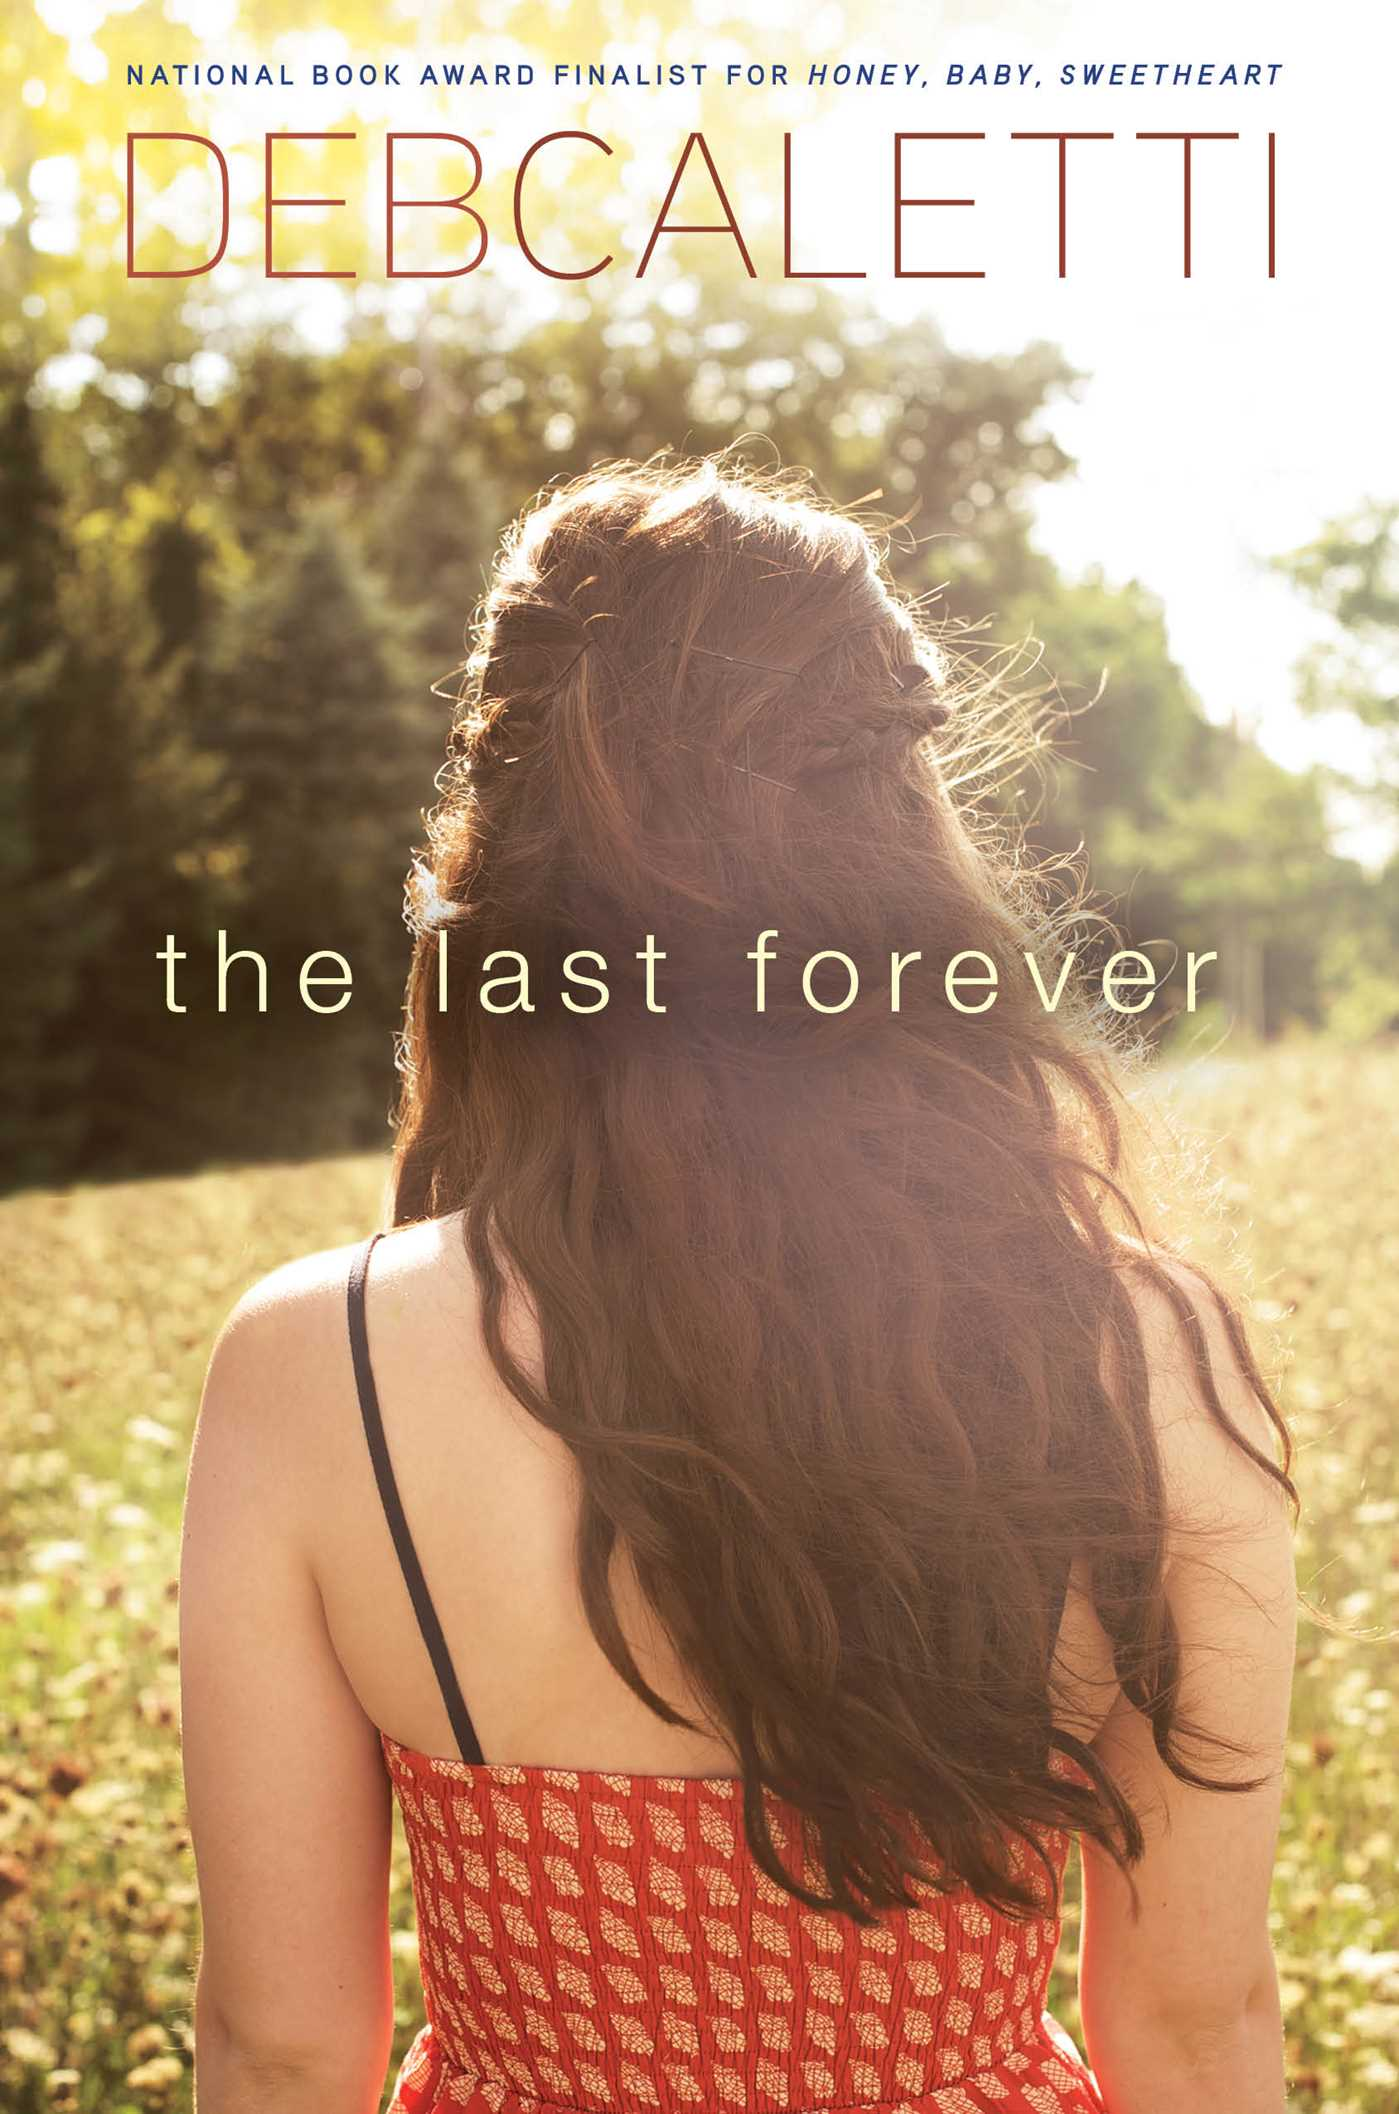 The-last-forever-9781442450011_hr